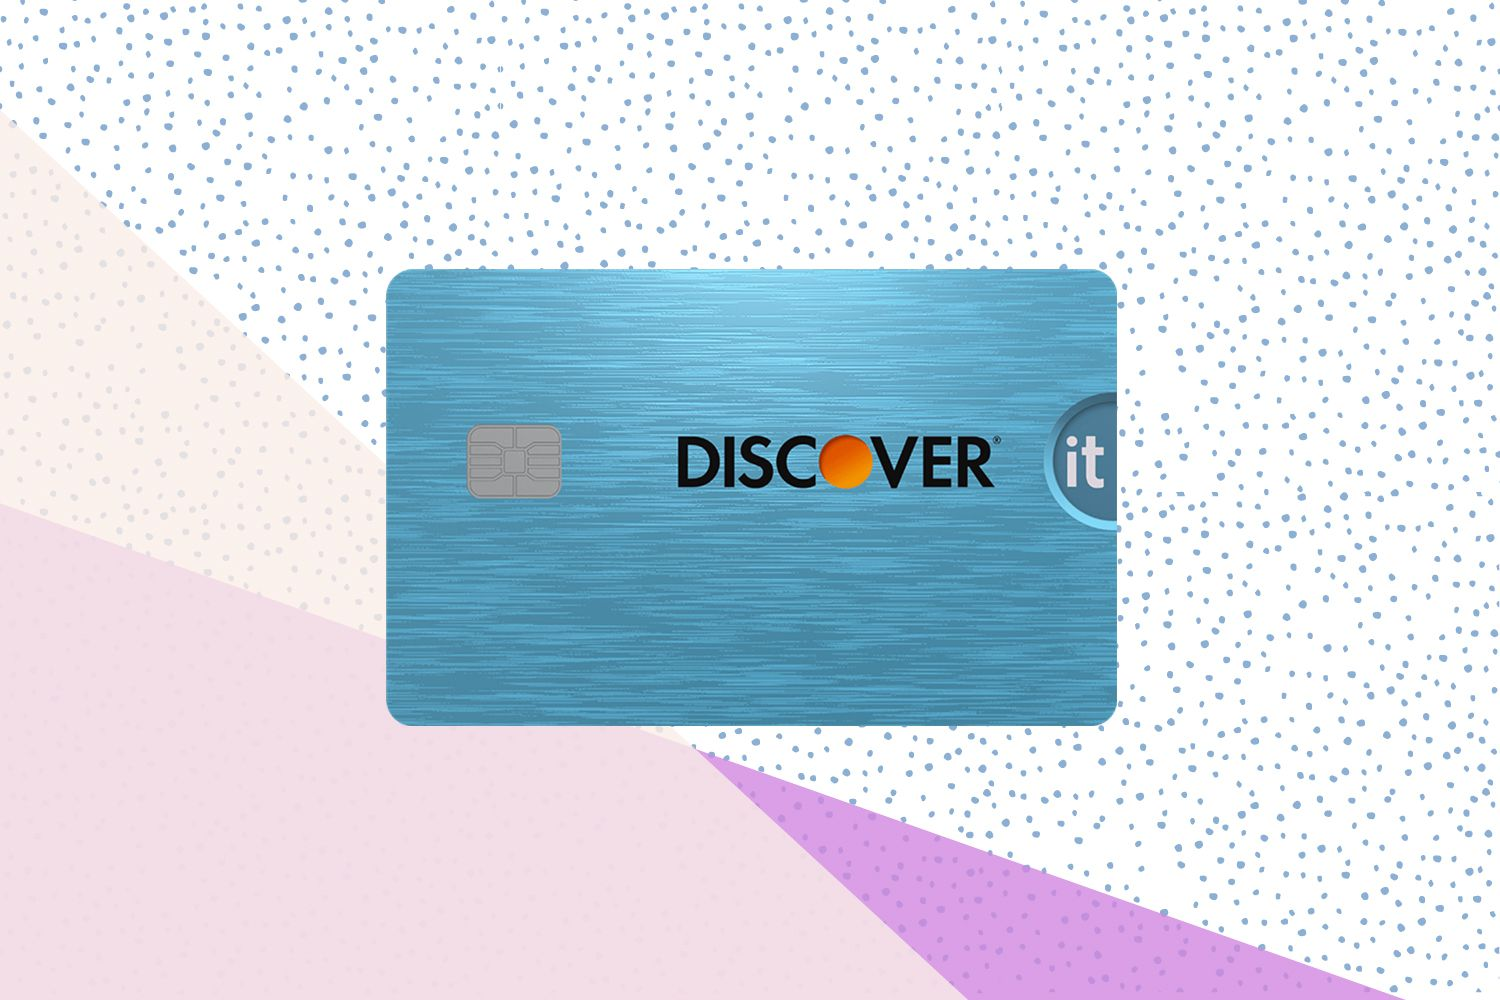 Discover it Balance Transfer Card Review